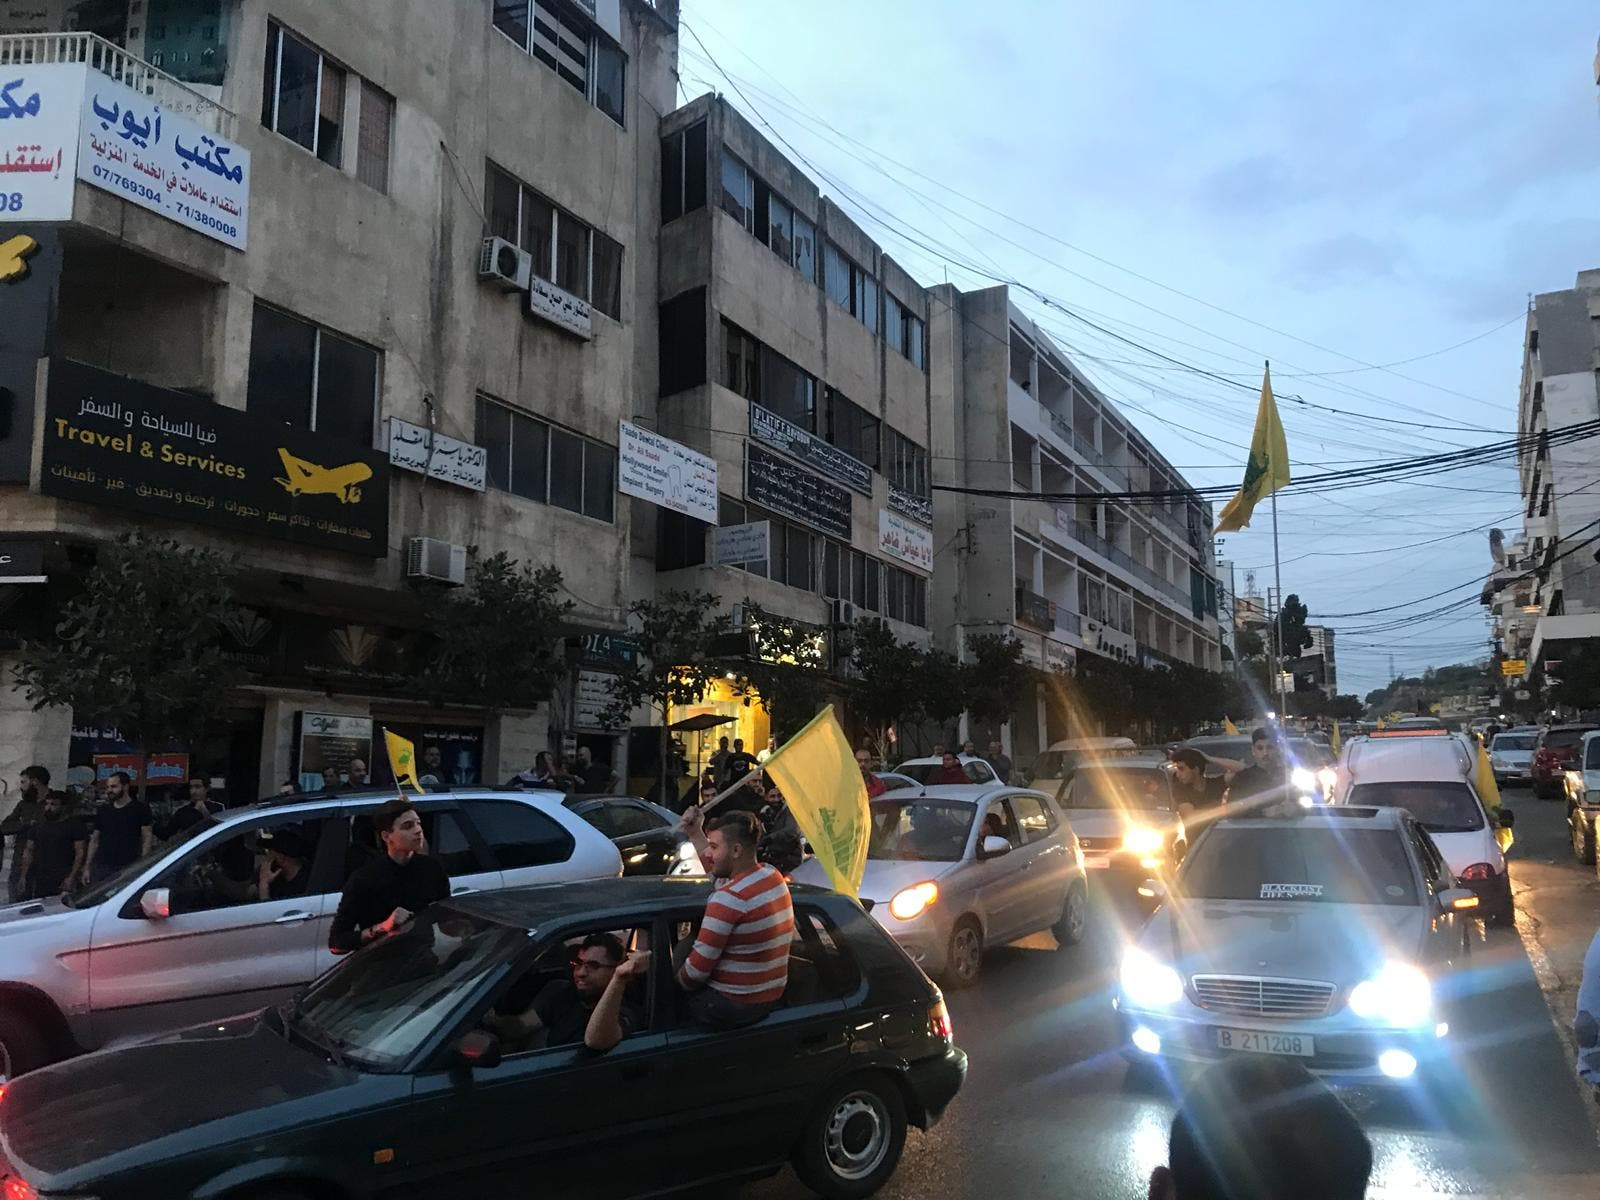 Hezbollah supporters turned up and attempted to reach the protest zone in a motor convoy